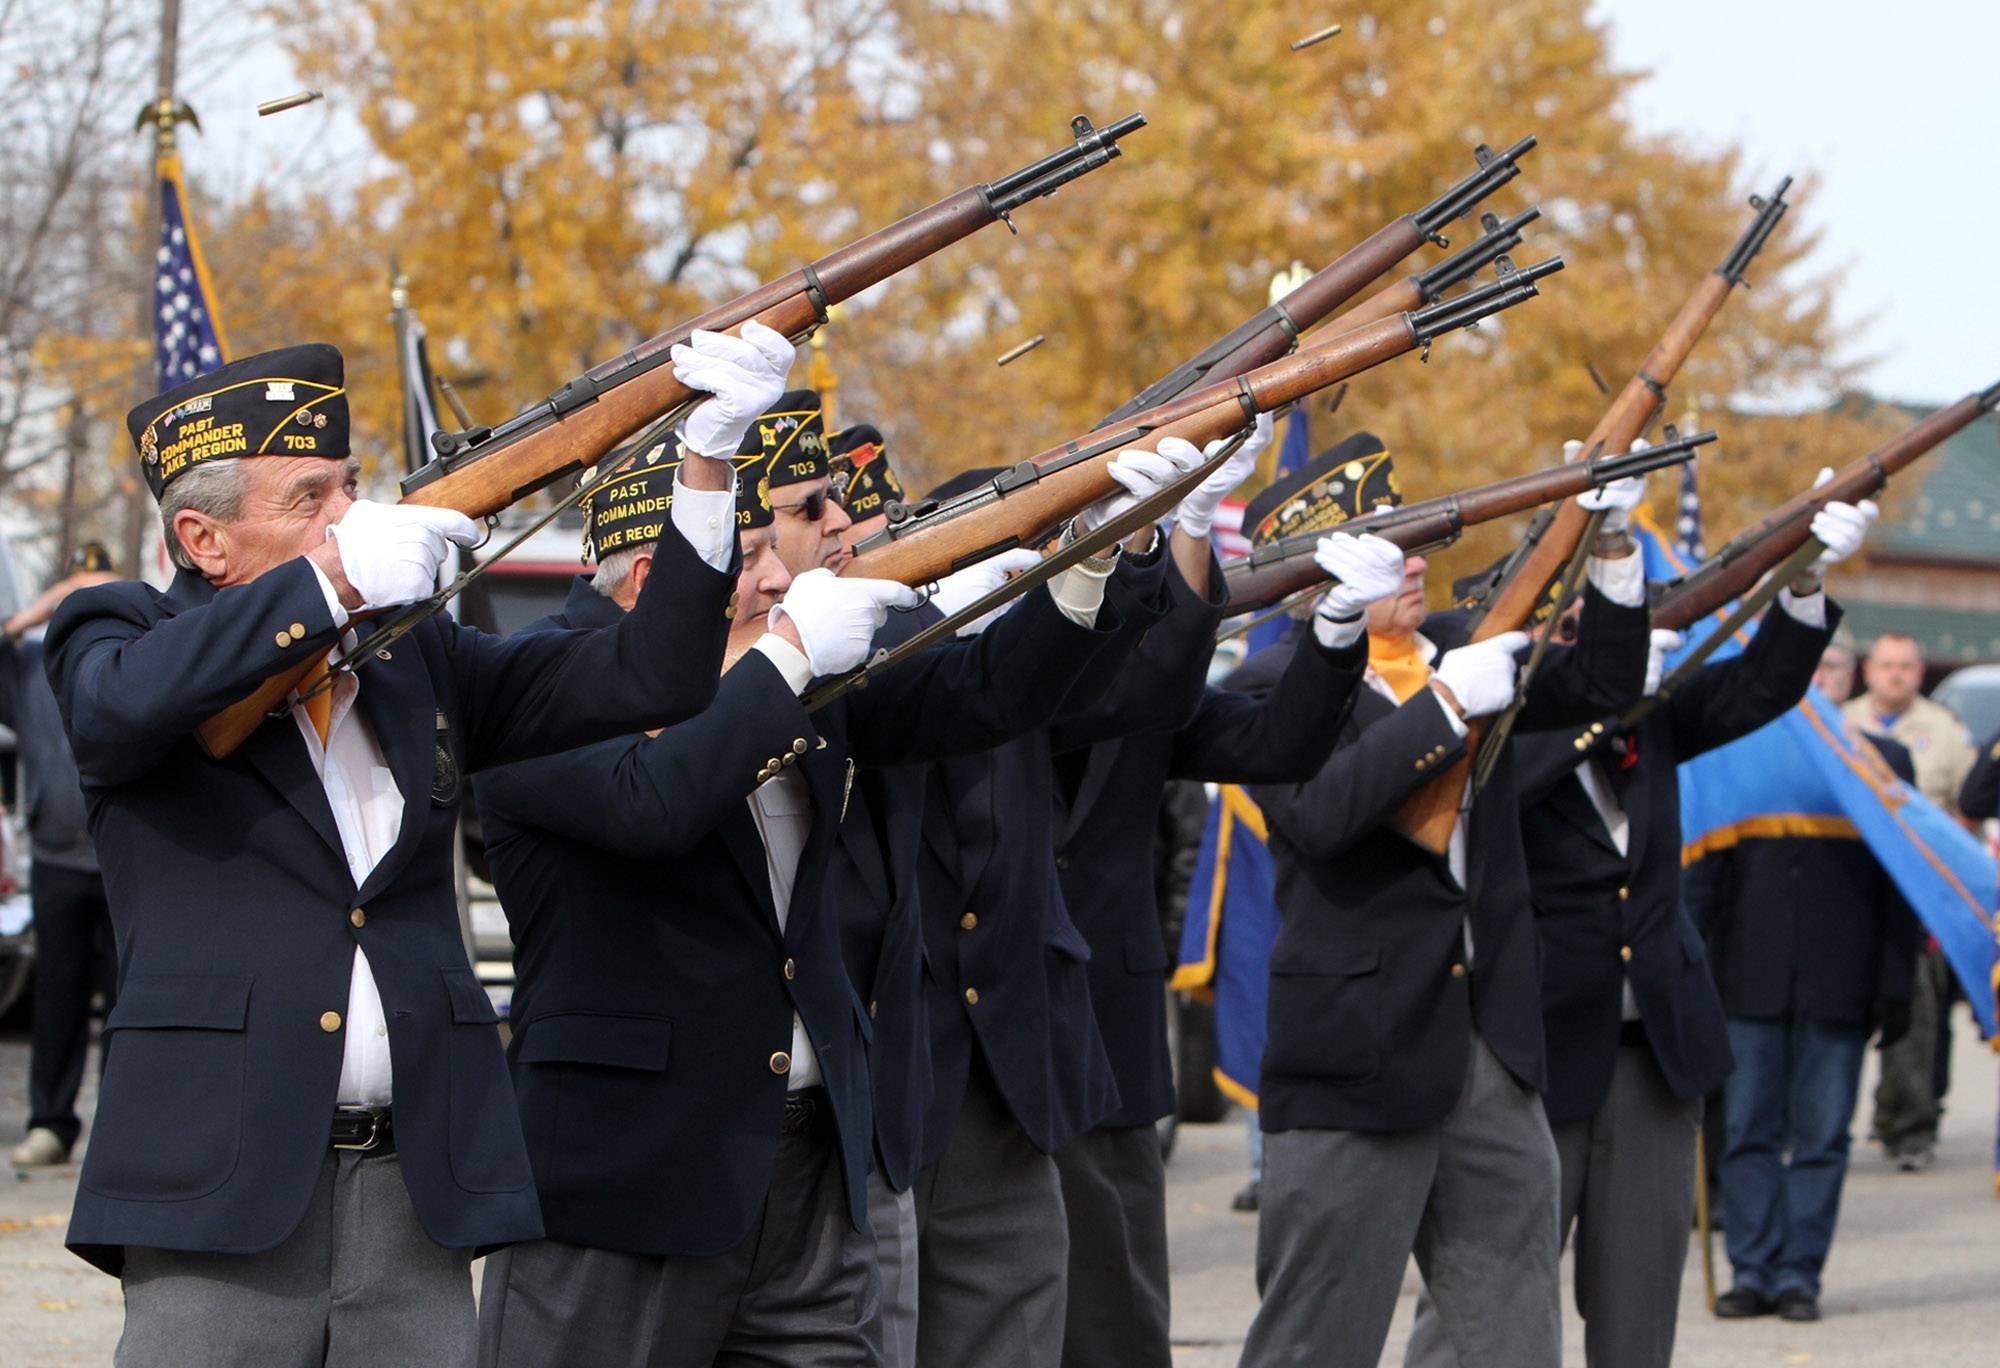 American Legion Post 703 presents a gun salute honoring veterans during a previous Veterans Day ceremony in Fox Lake. This year's remembrance is at 11 a.m. Nov. 11 at Veterans Memorial at the Metra Station in Fox Lake.